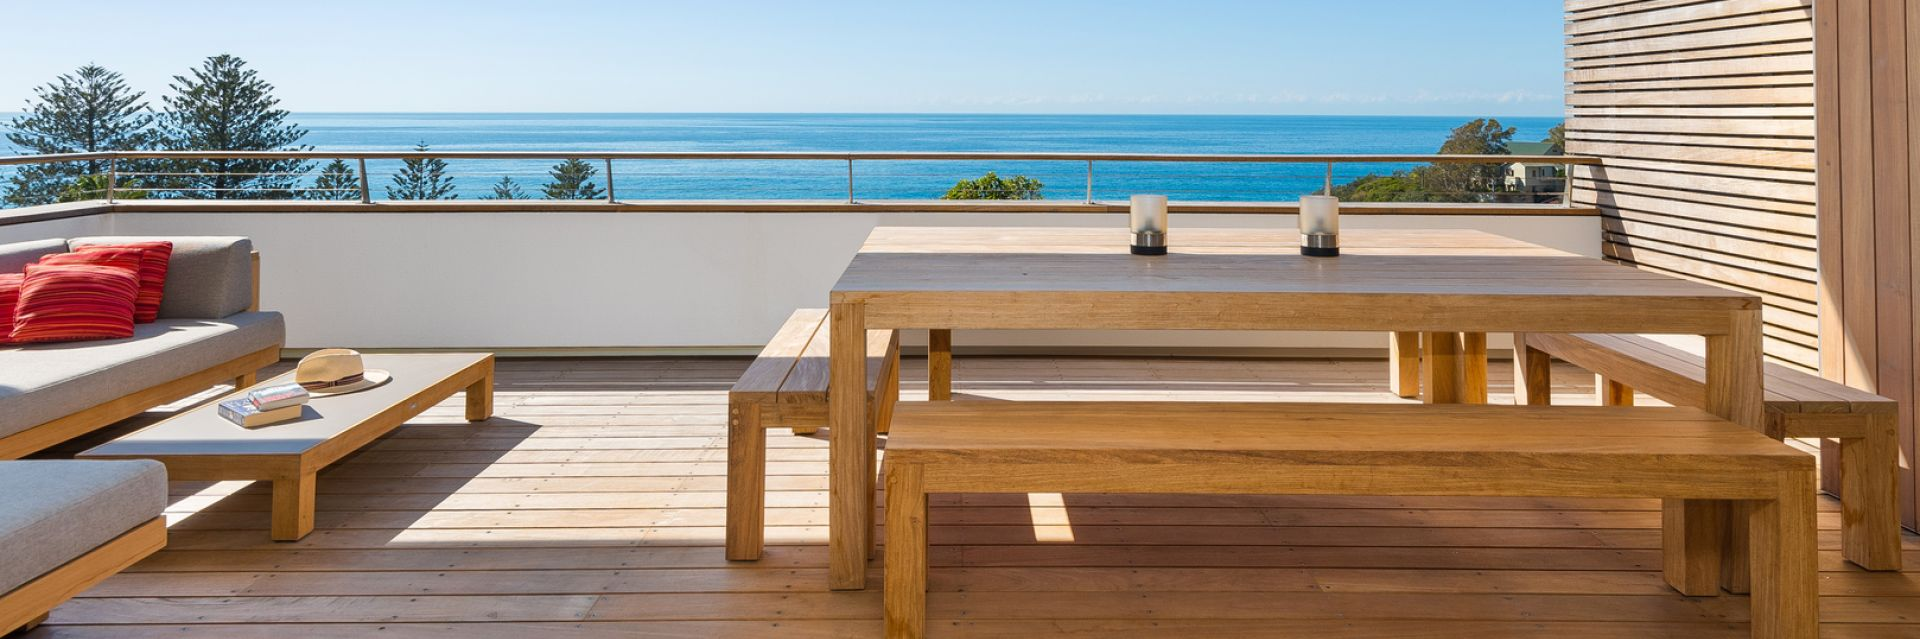 Belle Property Escapes property balcony overlooking the ocean at Whale Beach